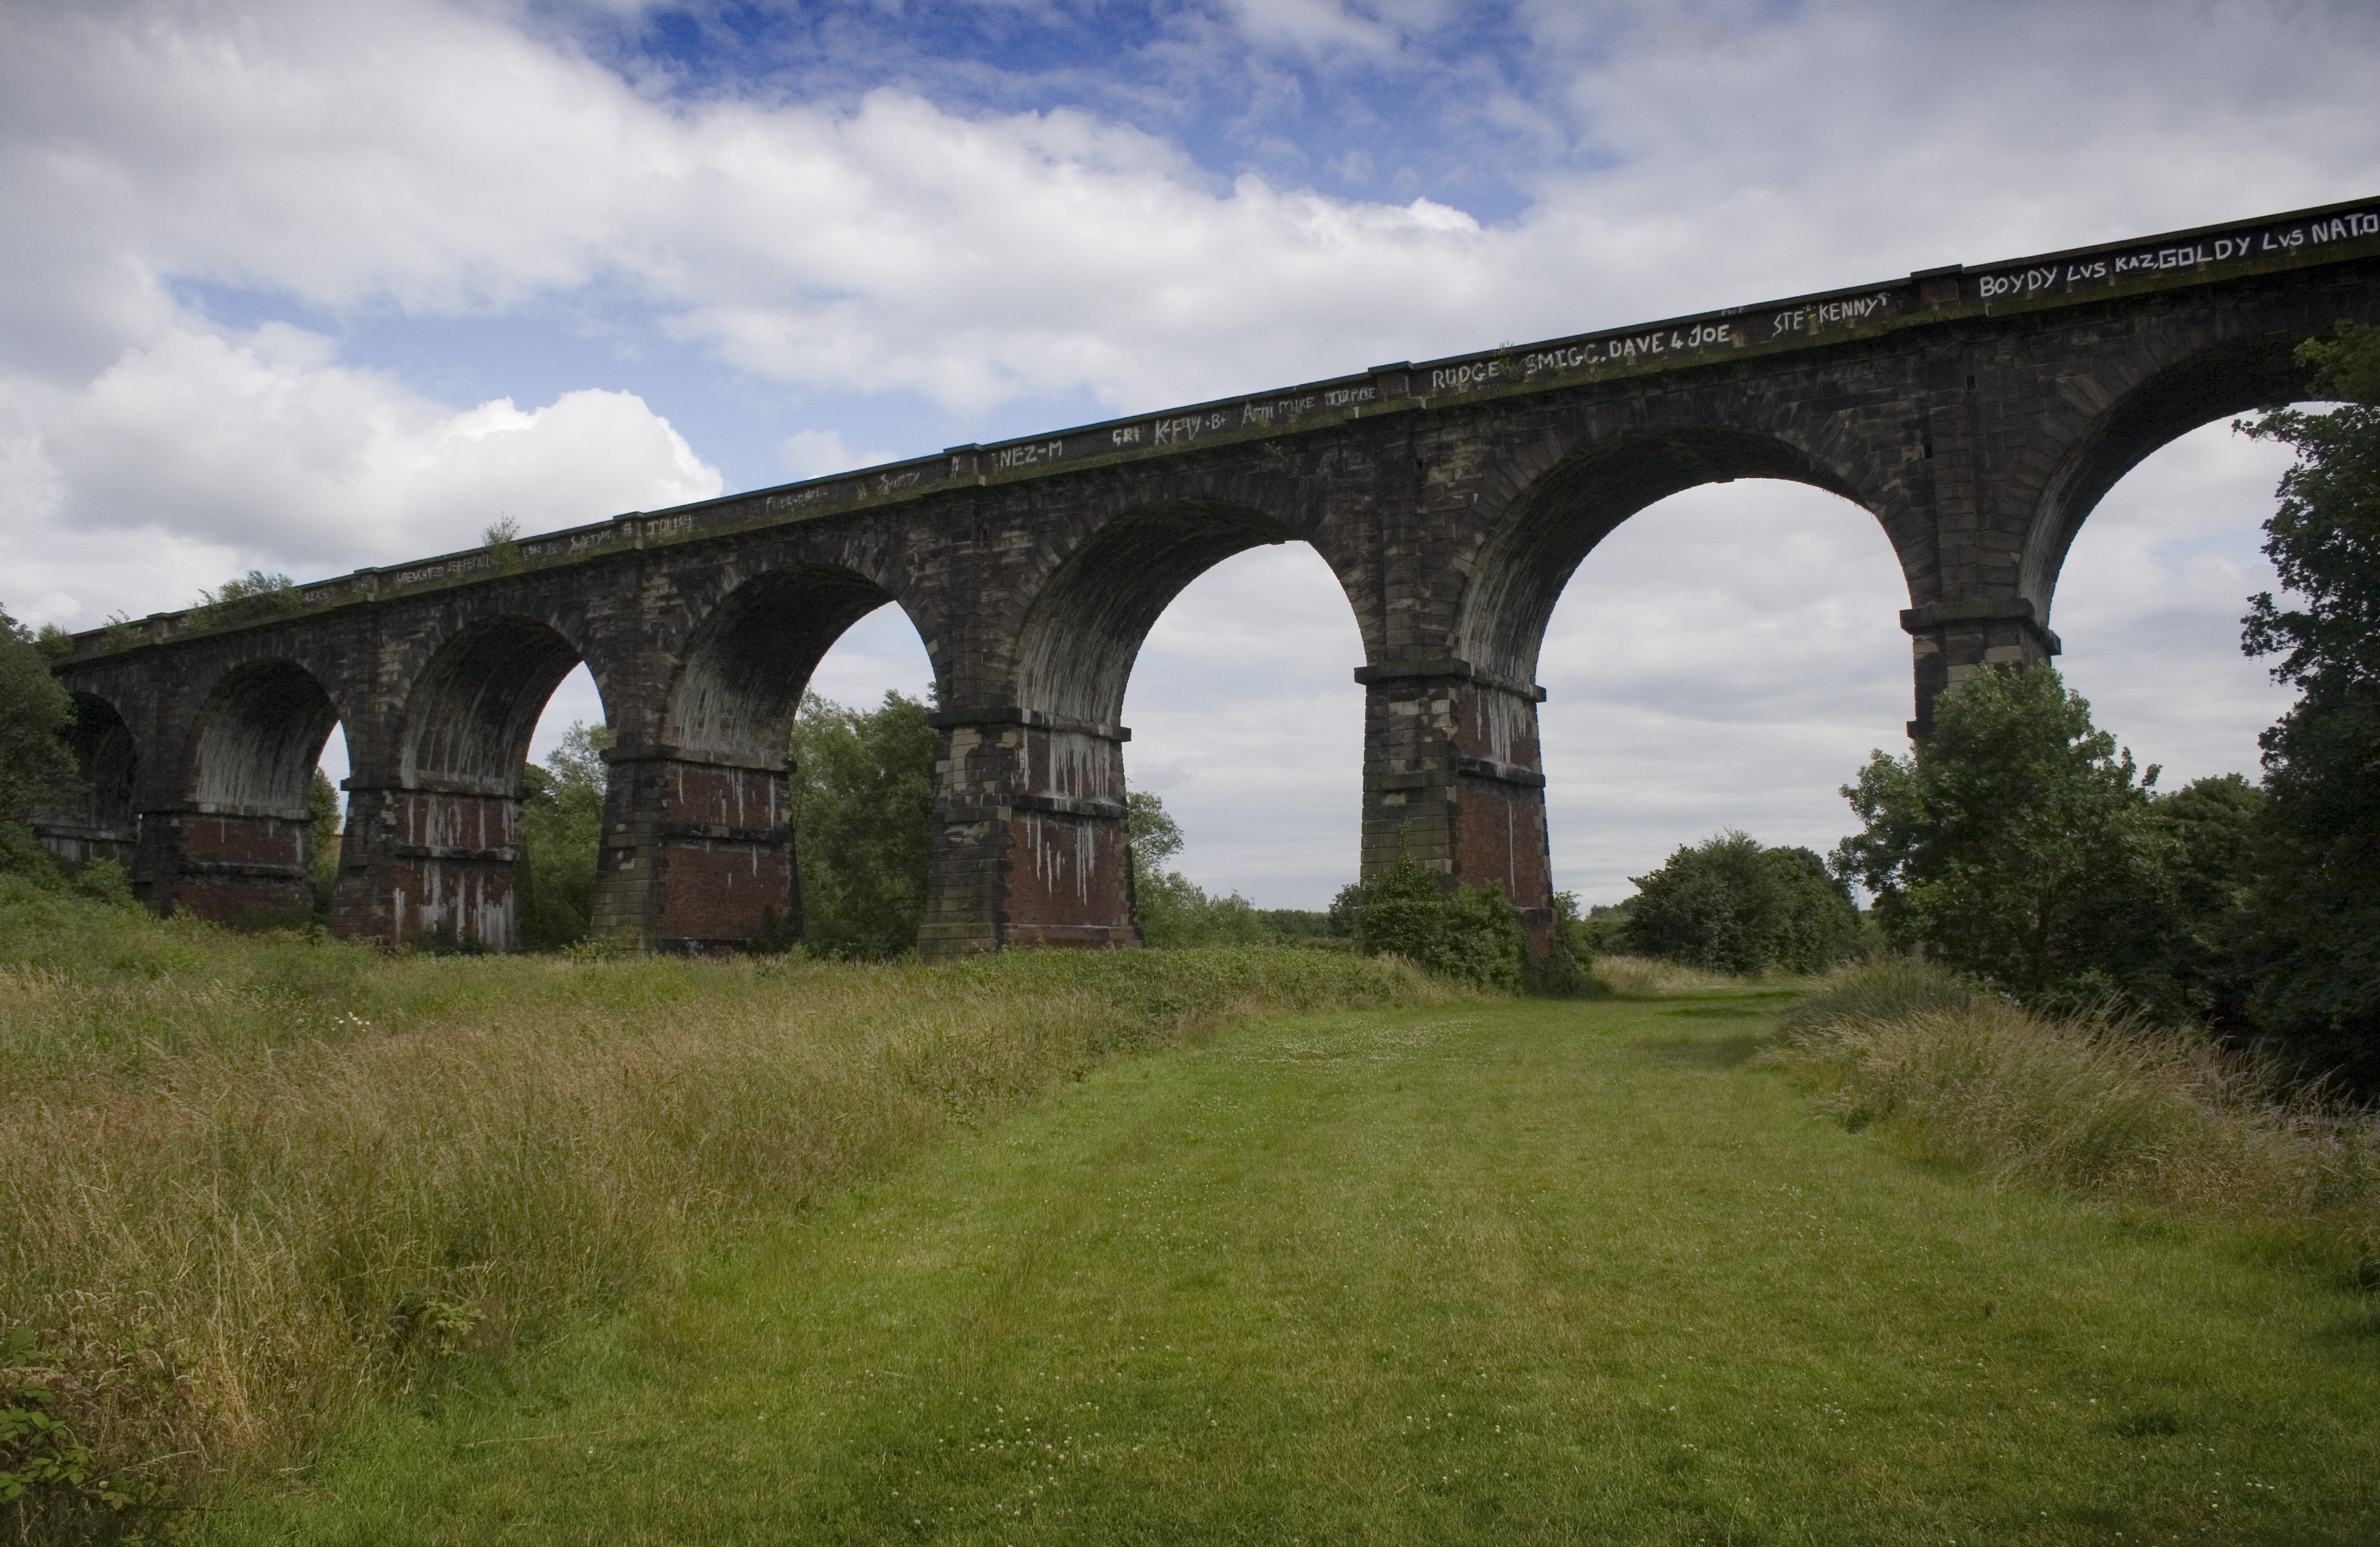 Stephenson's viaduct crosses the Sankey Brook, and the remains of the Sankey Canal. The viaduct is in use to this day. Photo taken on July 13, 2009.